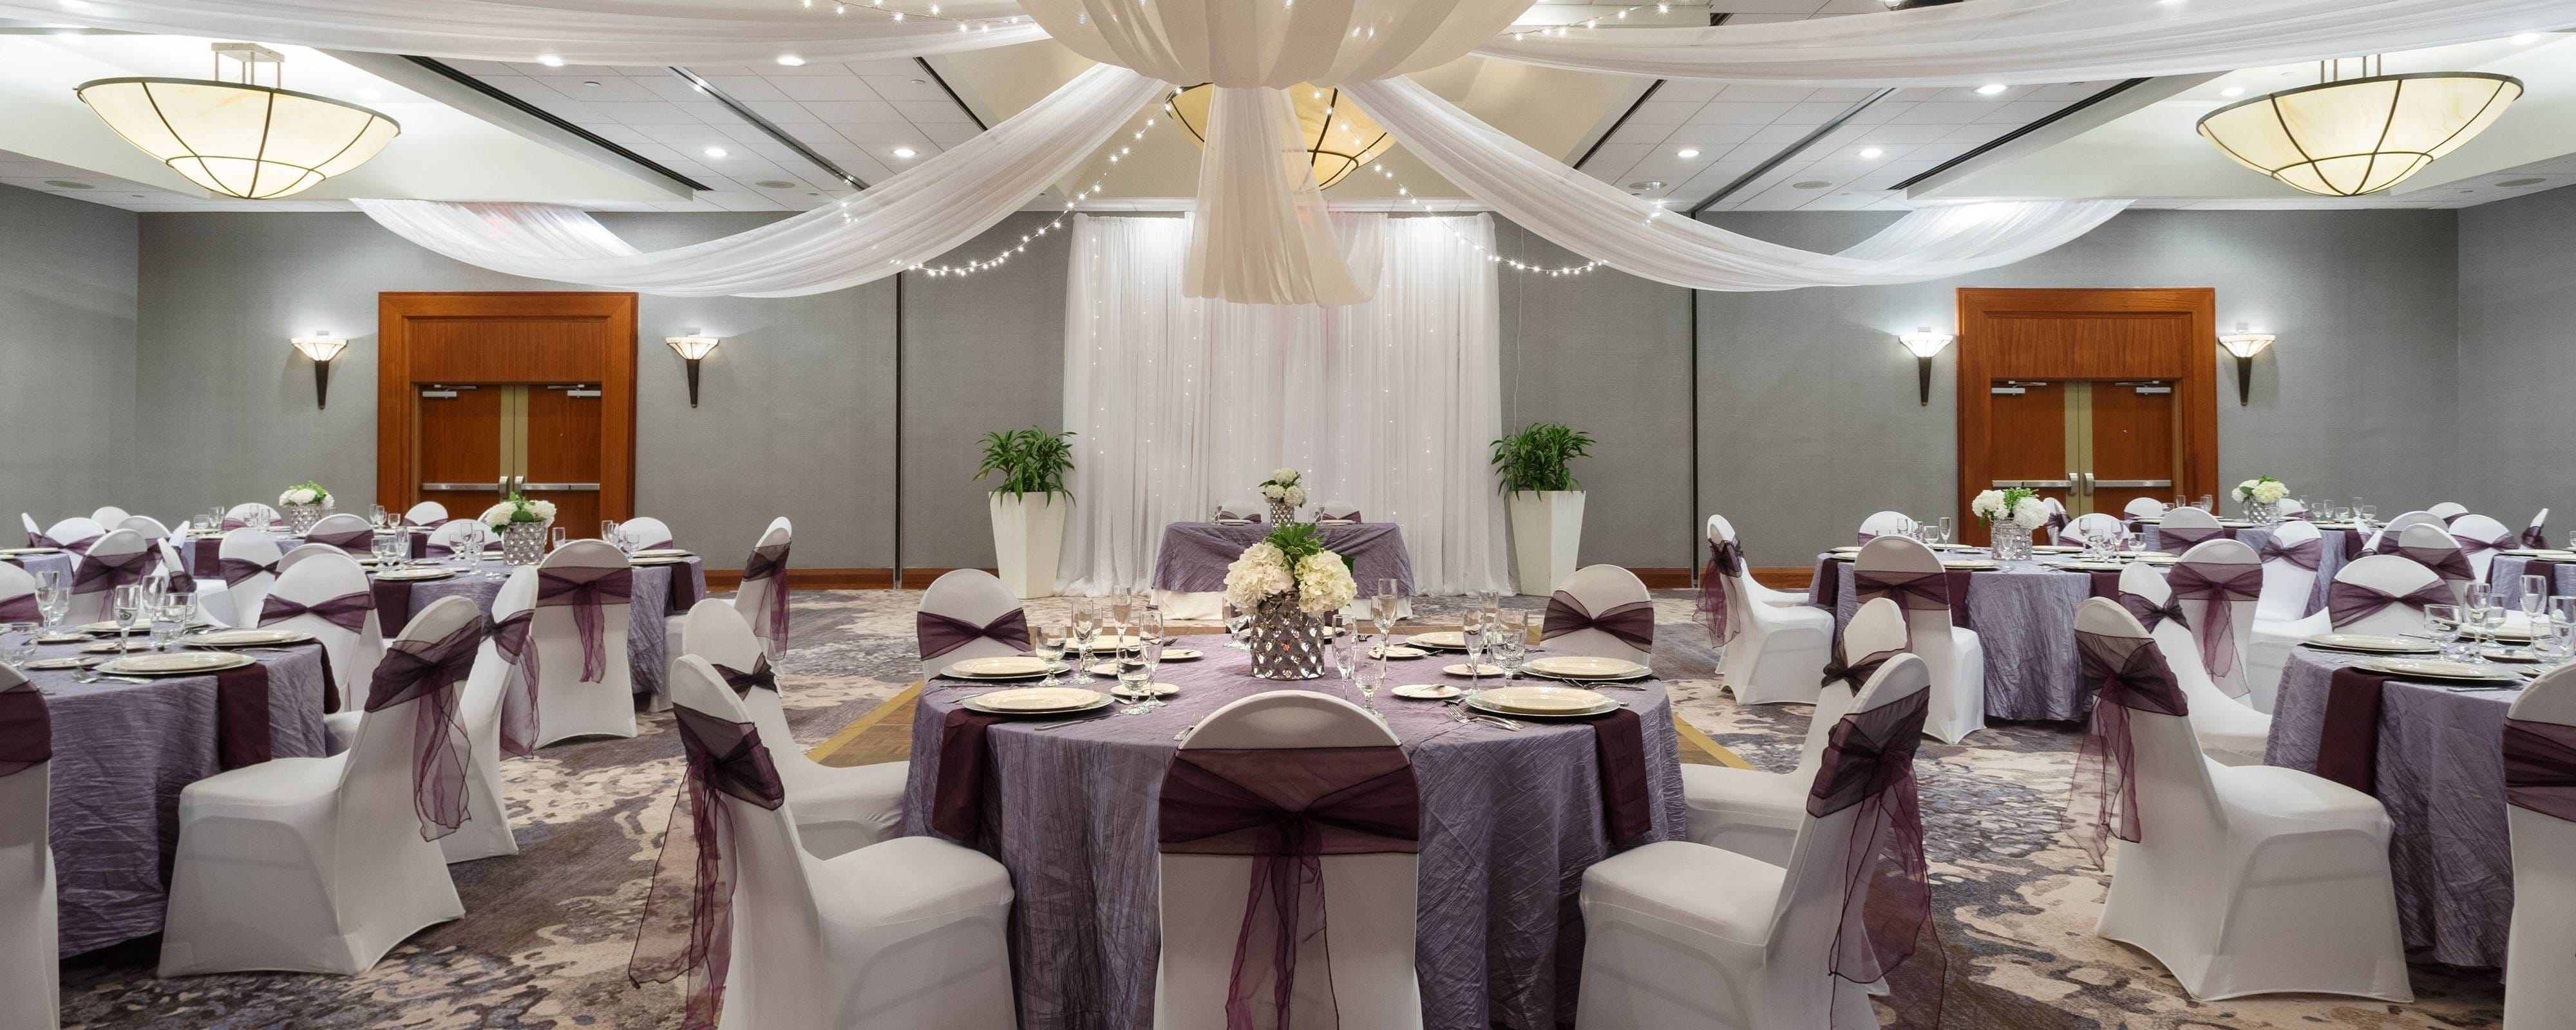 Wedding Reception Venues Clearwater Fl Clearwater Beach